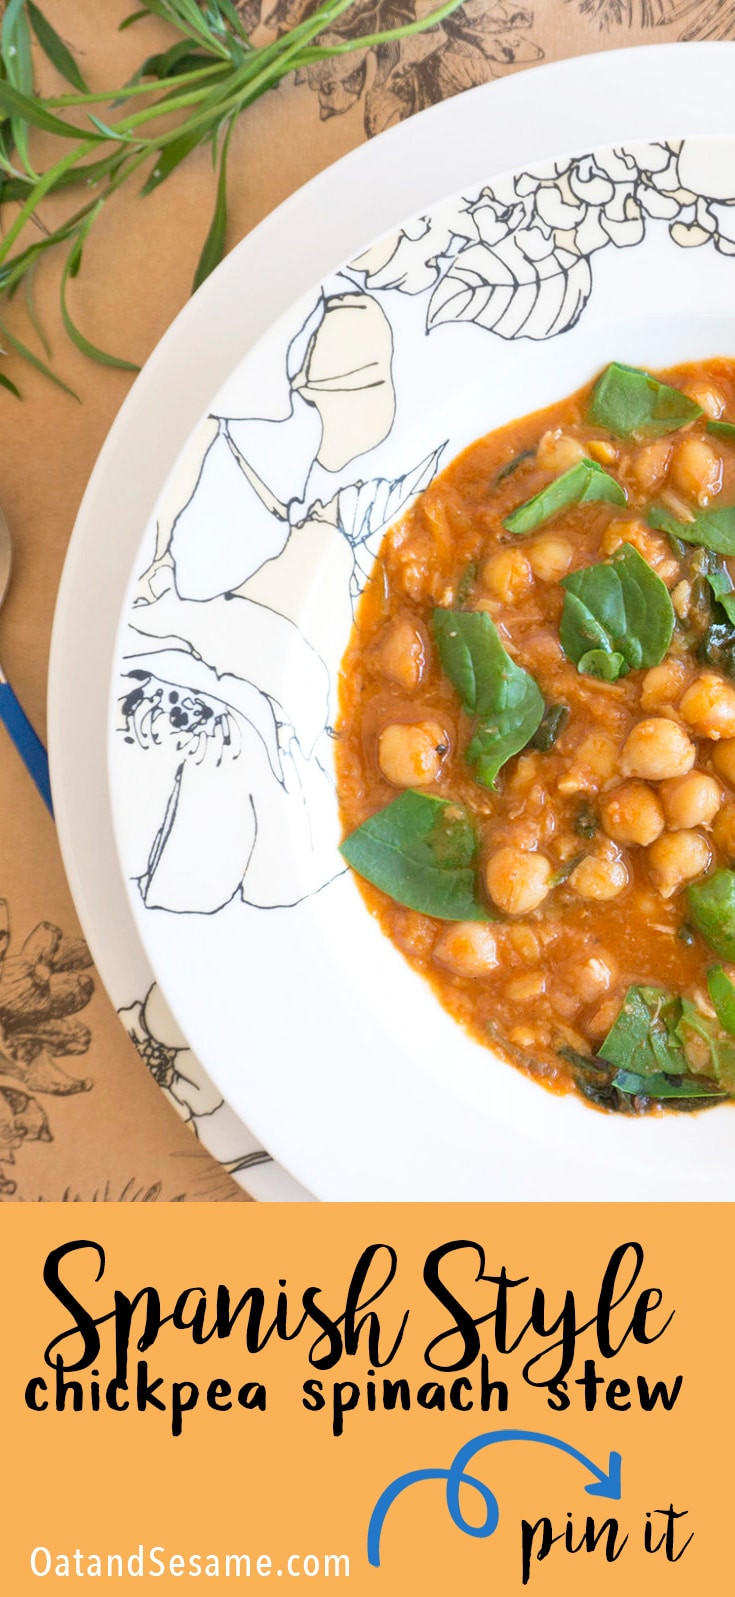 Spanish Style Chickpea Spinach Stew - hearty and full of warm smoky paprika! | #SOUP | #STEW | #CHICKPEA | #VEGETARIAN | #Recipes at OatandSesame.com